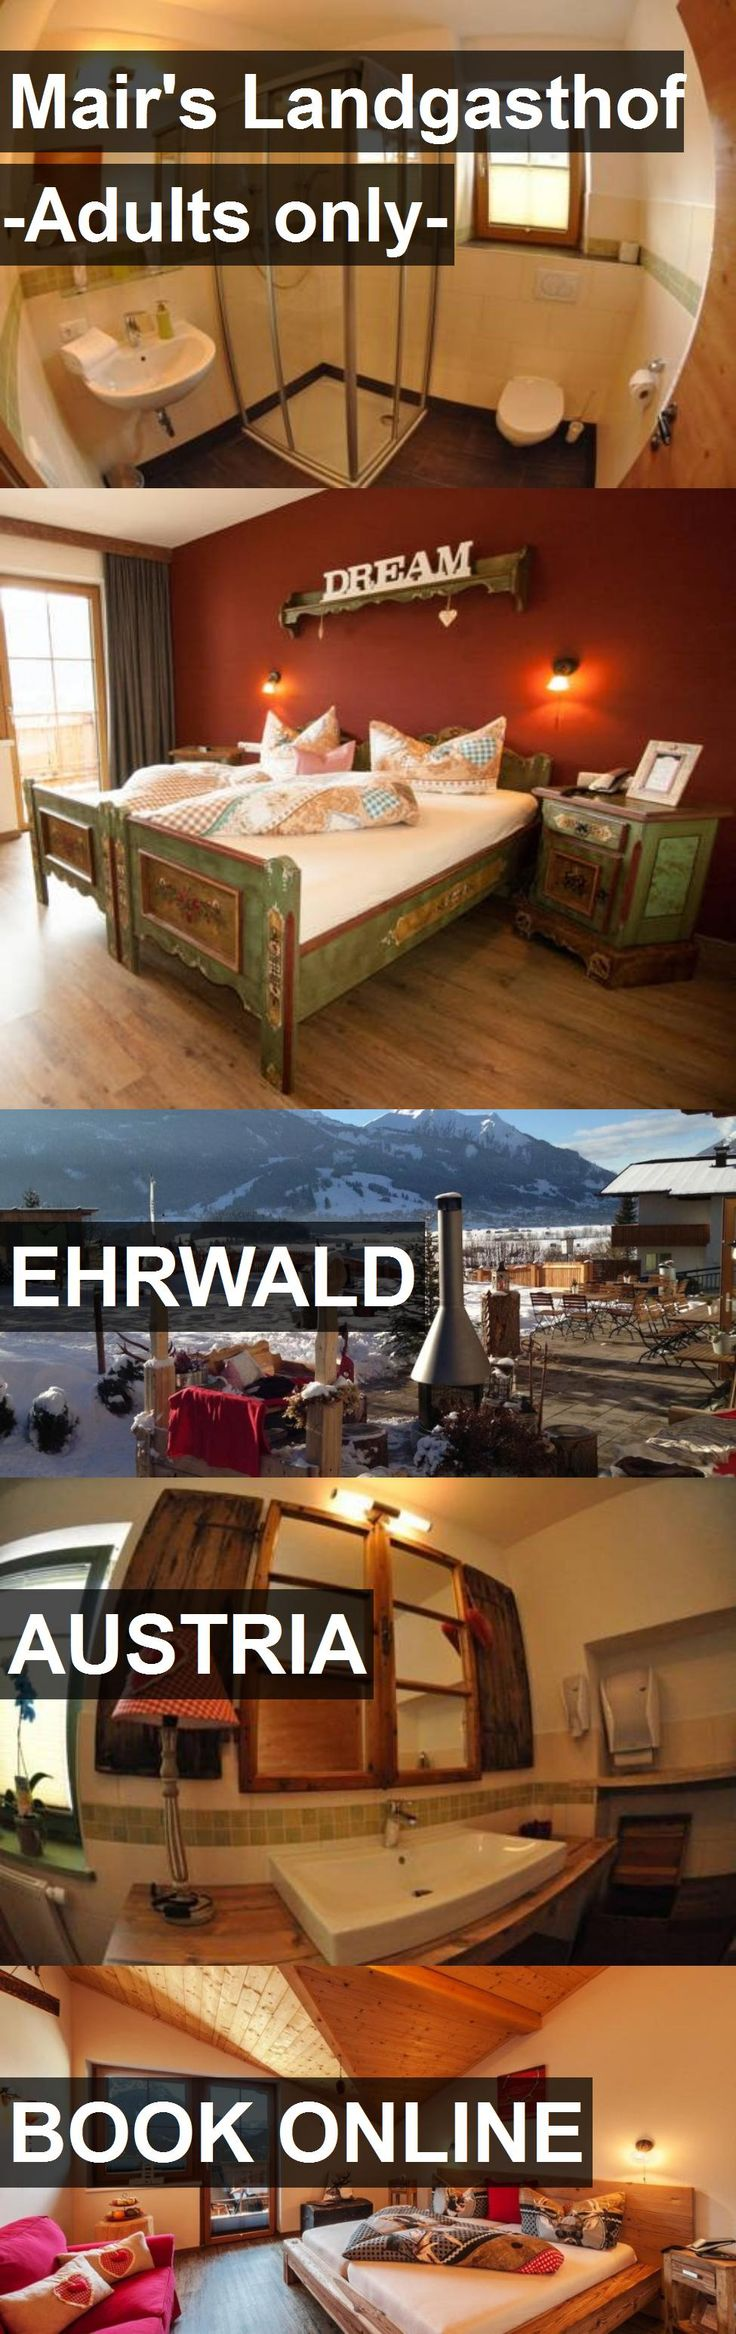 Hotel Mair's Landgasthof -Adults only- in Ehrwald, Austria. For more information, photos, reviews and best prices please follow the link. #Austria #Ehrwald #Mair'sLandgasthof-Adultsonly- #hotel #travel #vacation